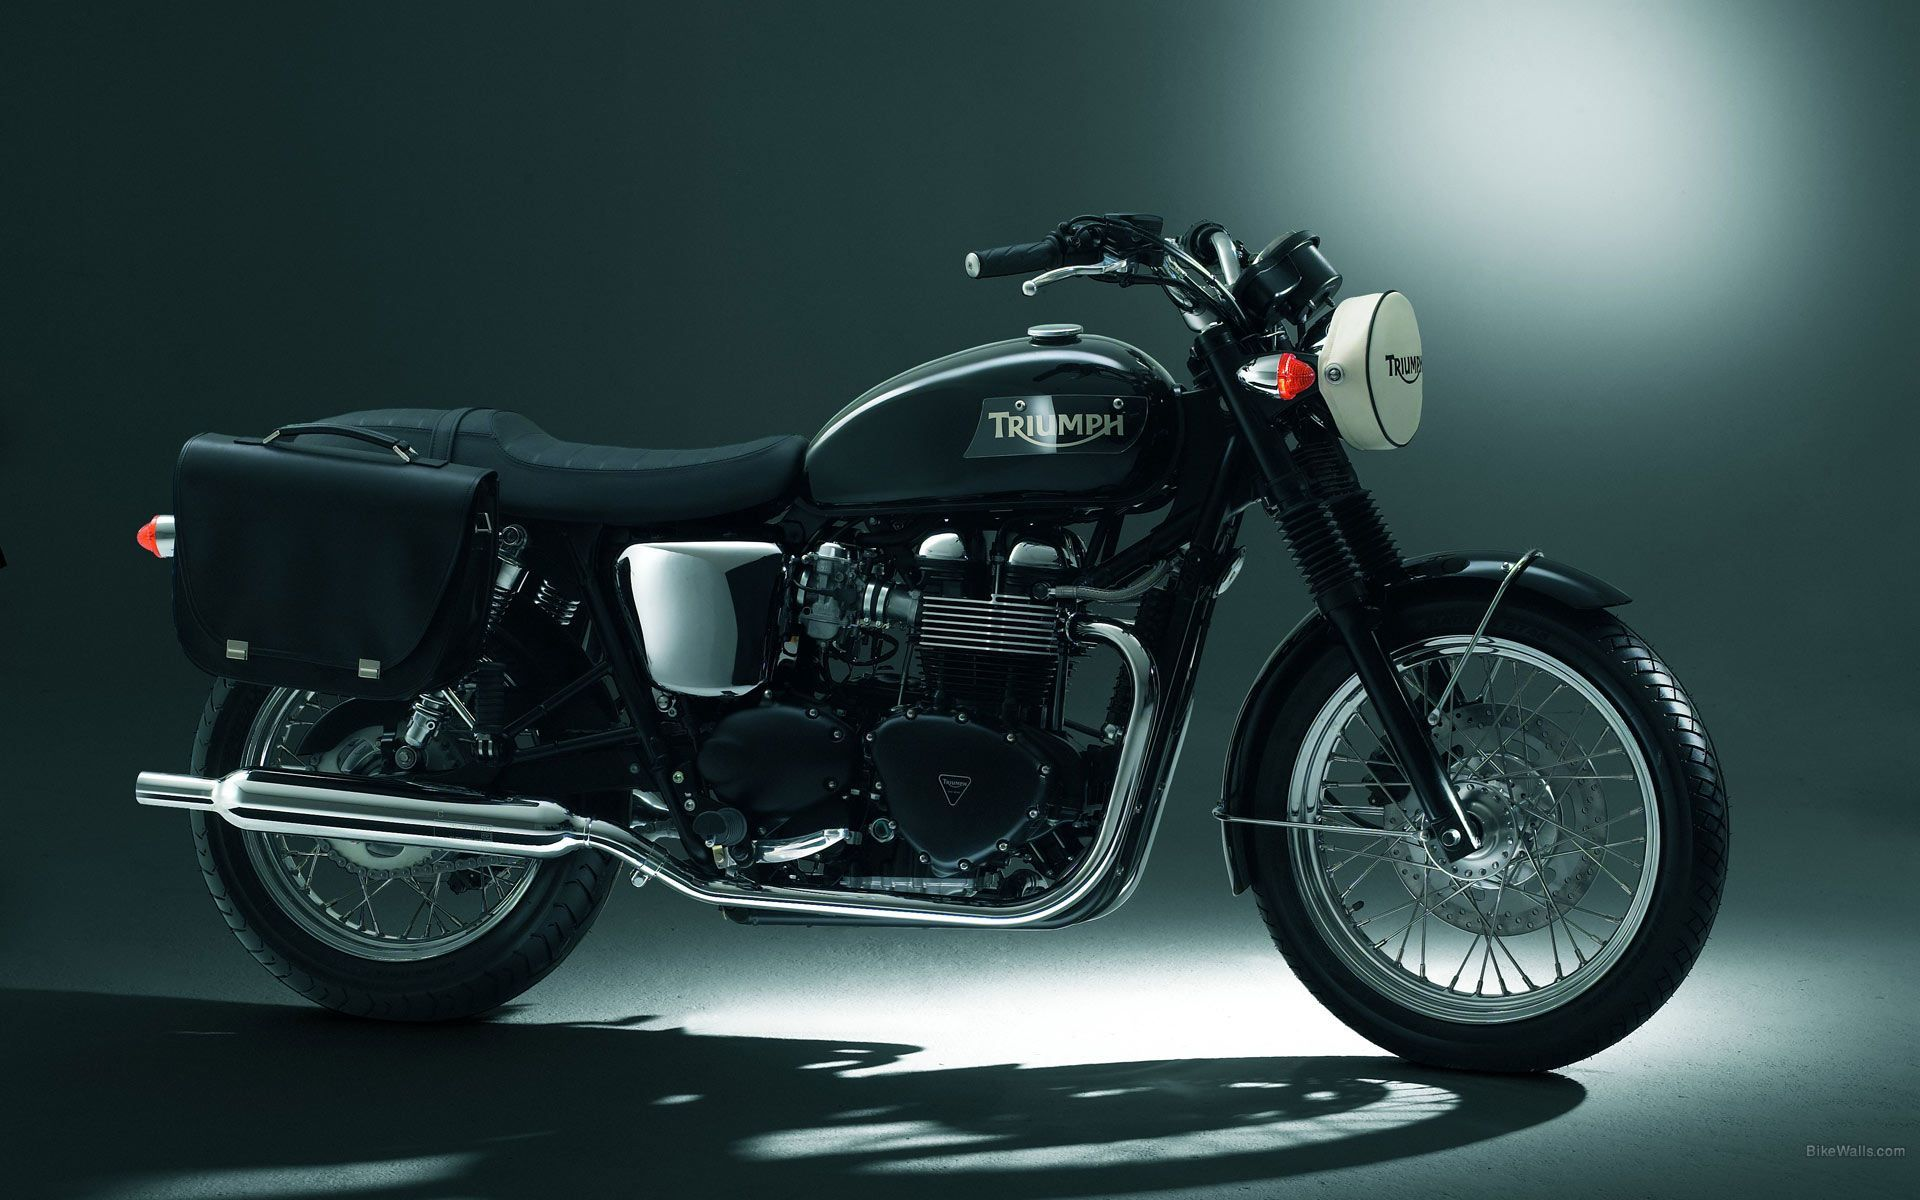 Triumph Bonneville HD Wallpaper : Get Free top quality